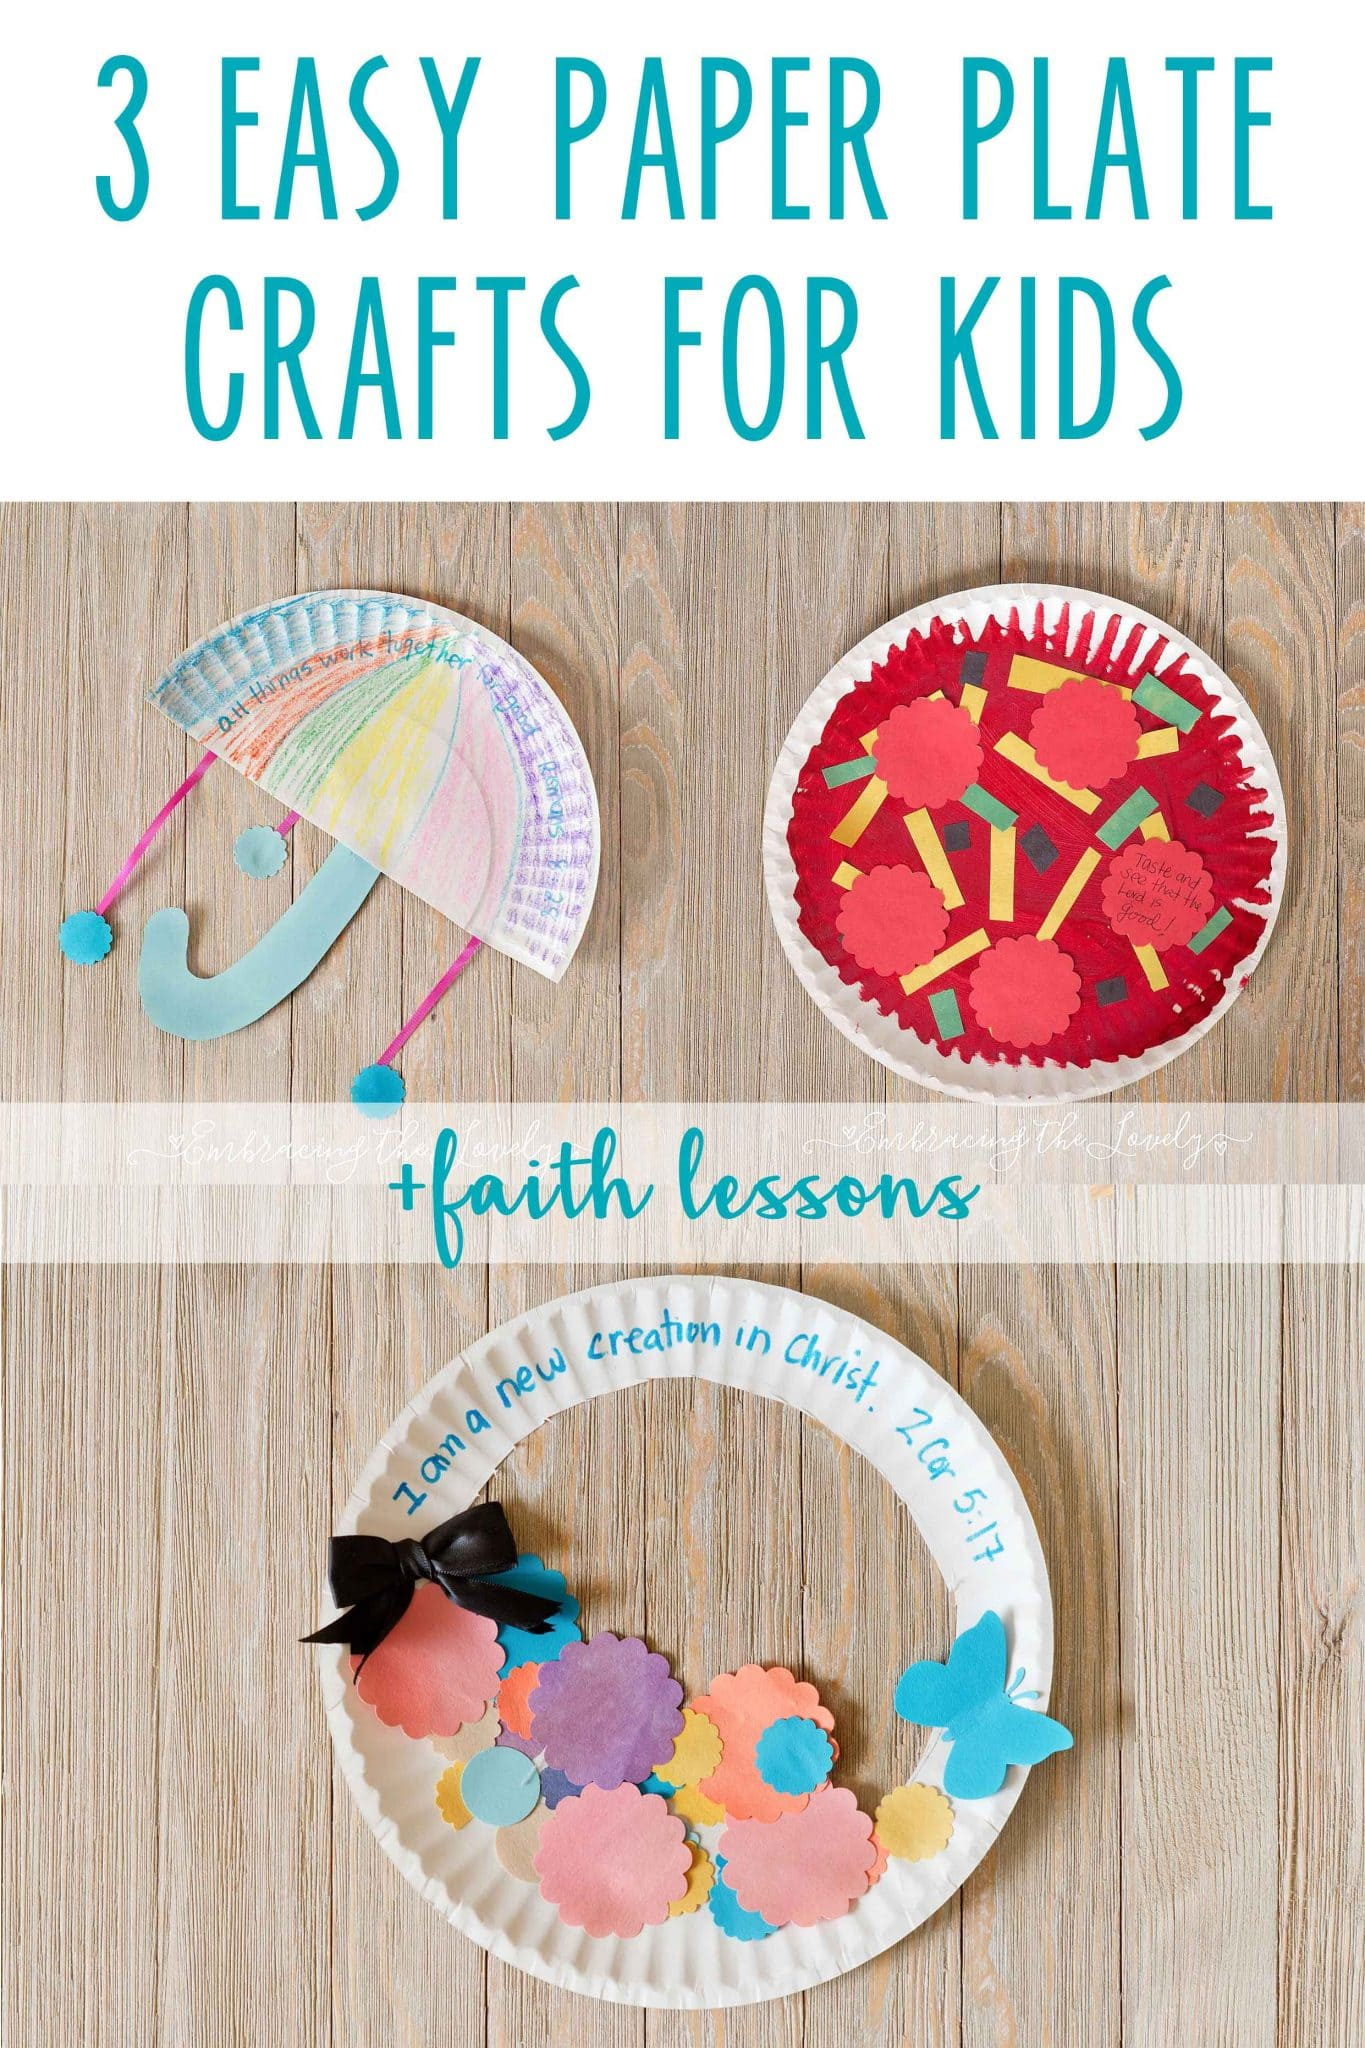 3 Paper Plate Crafts For Kids + Faith Lesson